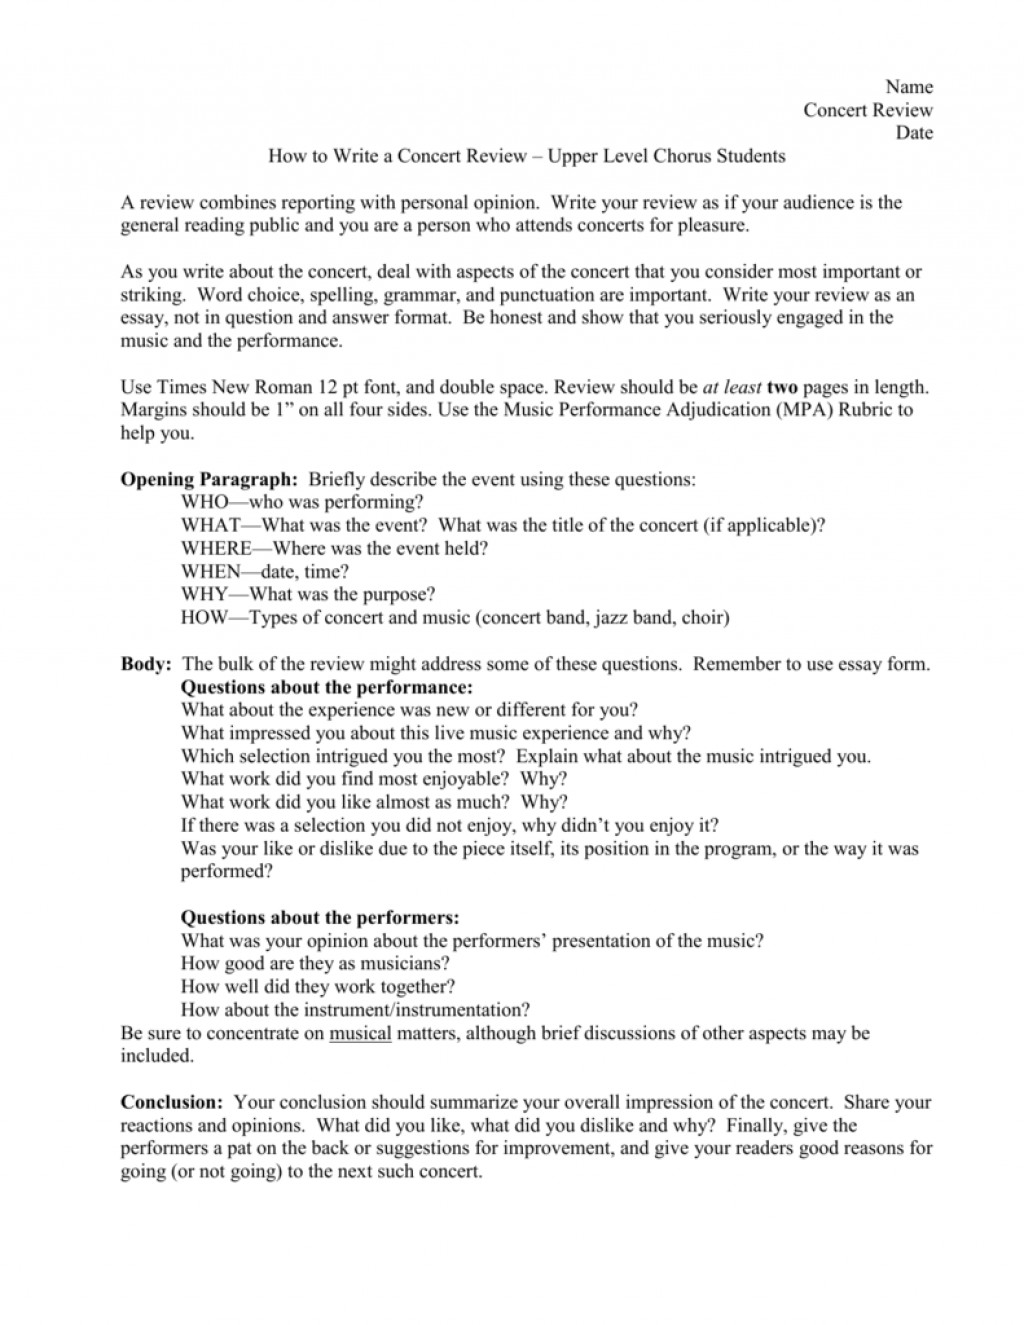 007 Essay Example Jazz Report Concert College Paper Academic Service Sample 008063356 1 Review Music Fascinating Appreciation Large